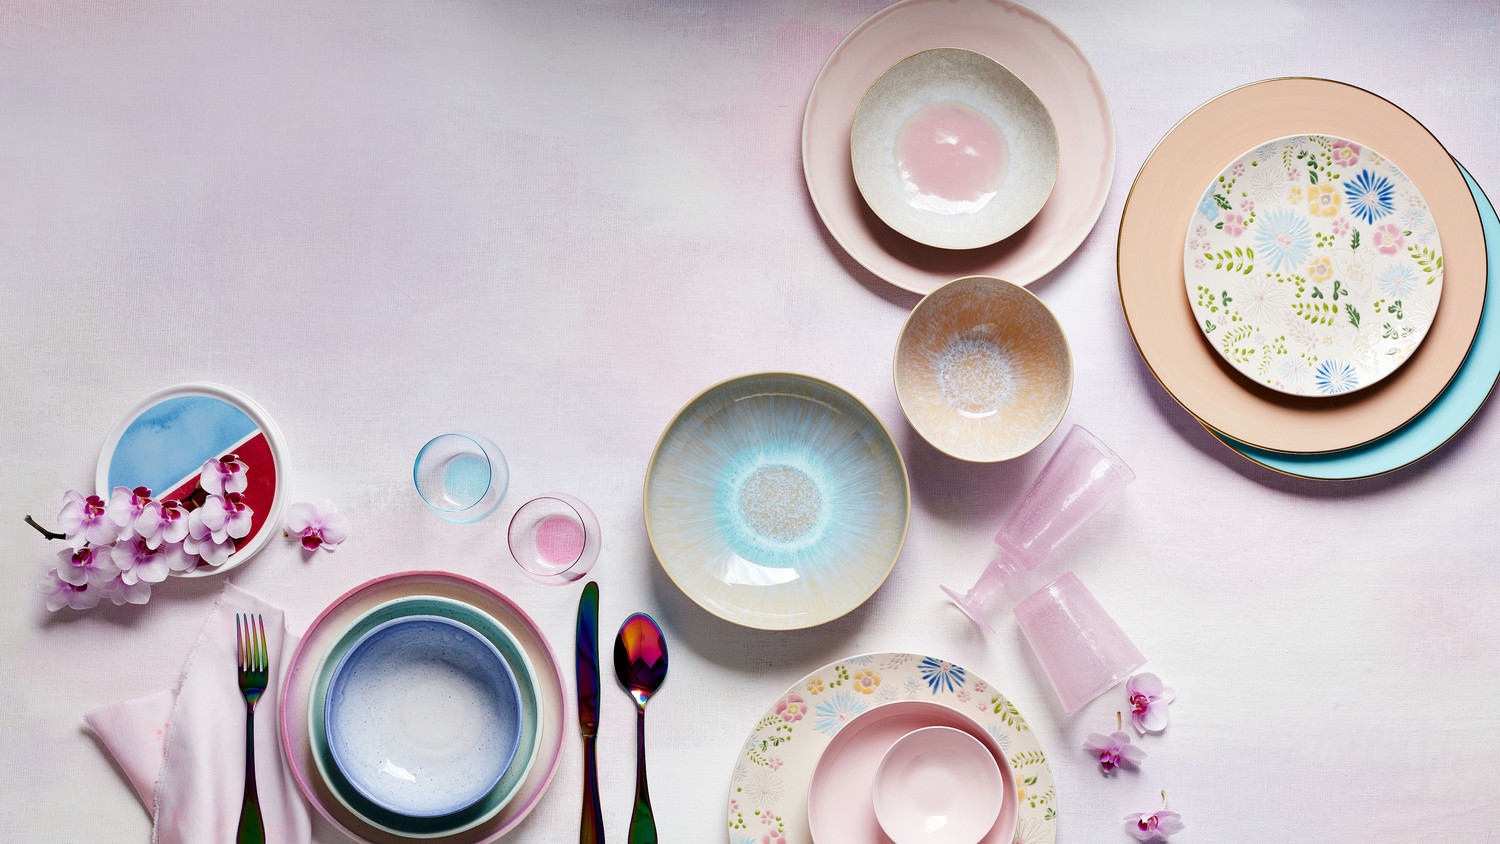 Enhance Your Registry with Dinnerware Sets Inspired by Iconic Artwork & Enhance Your Registry with Dinnerware Sets Inspired by Iconic ...